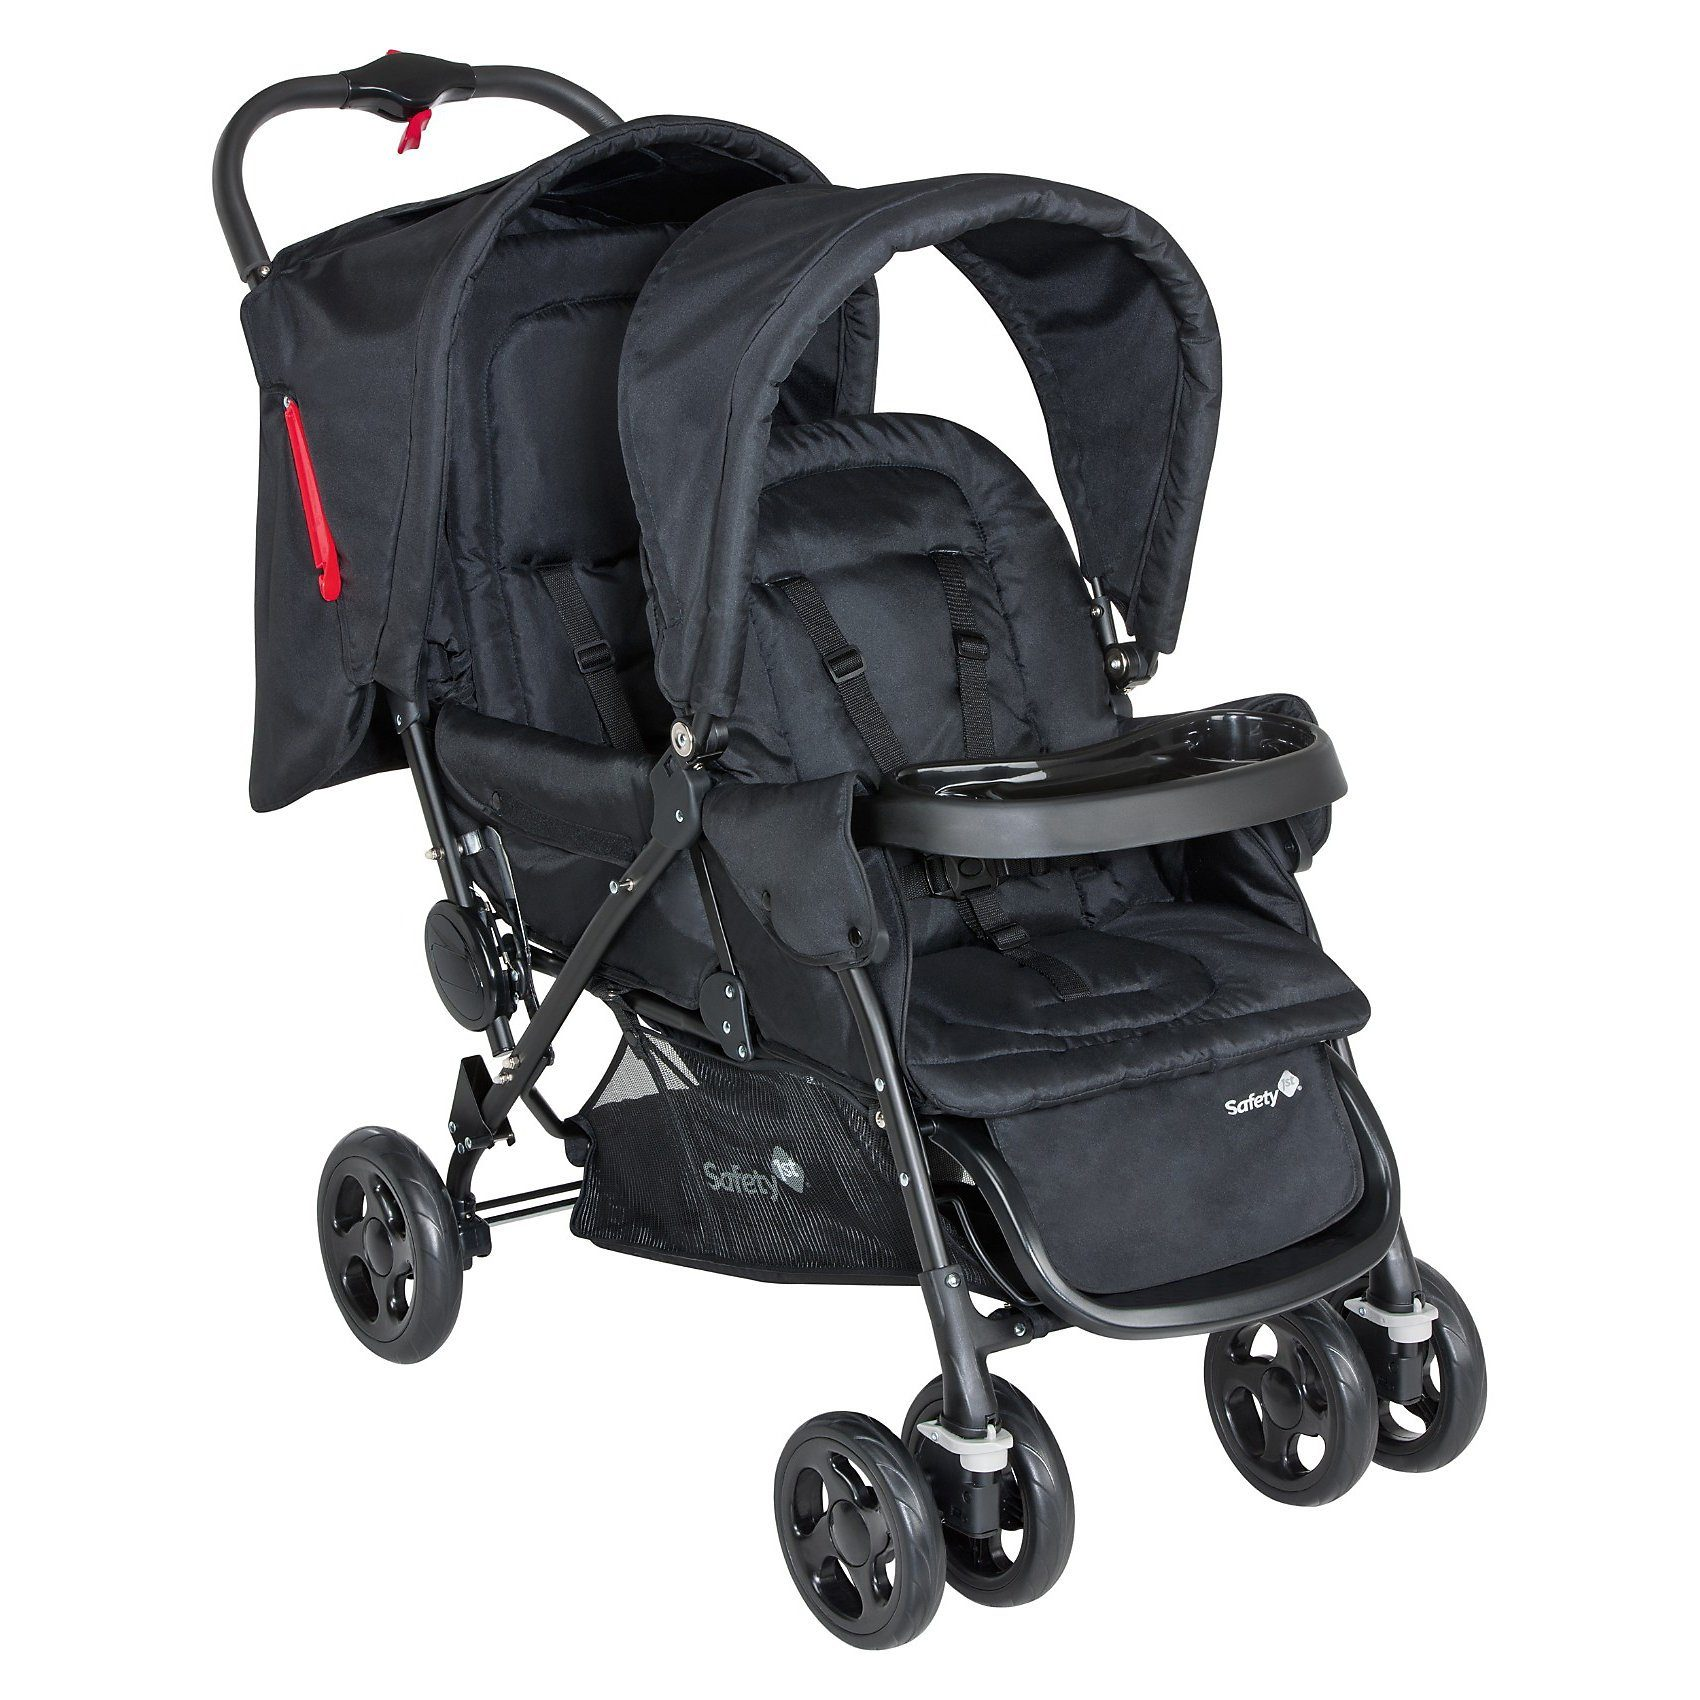 Safety 1st Geschwisterwagen Duodeal, Full Black, 2017